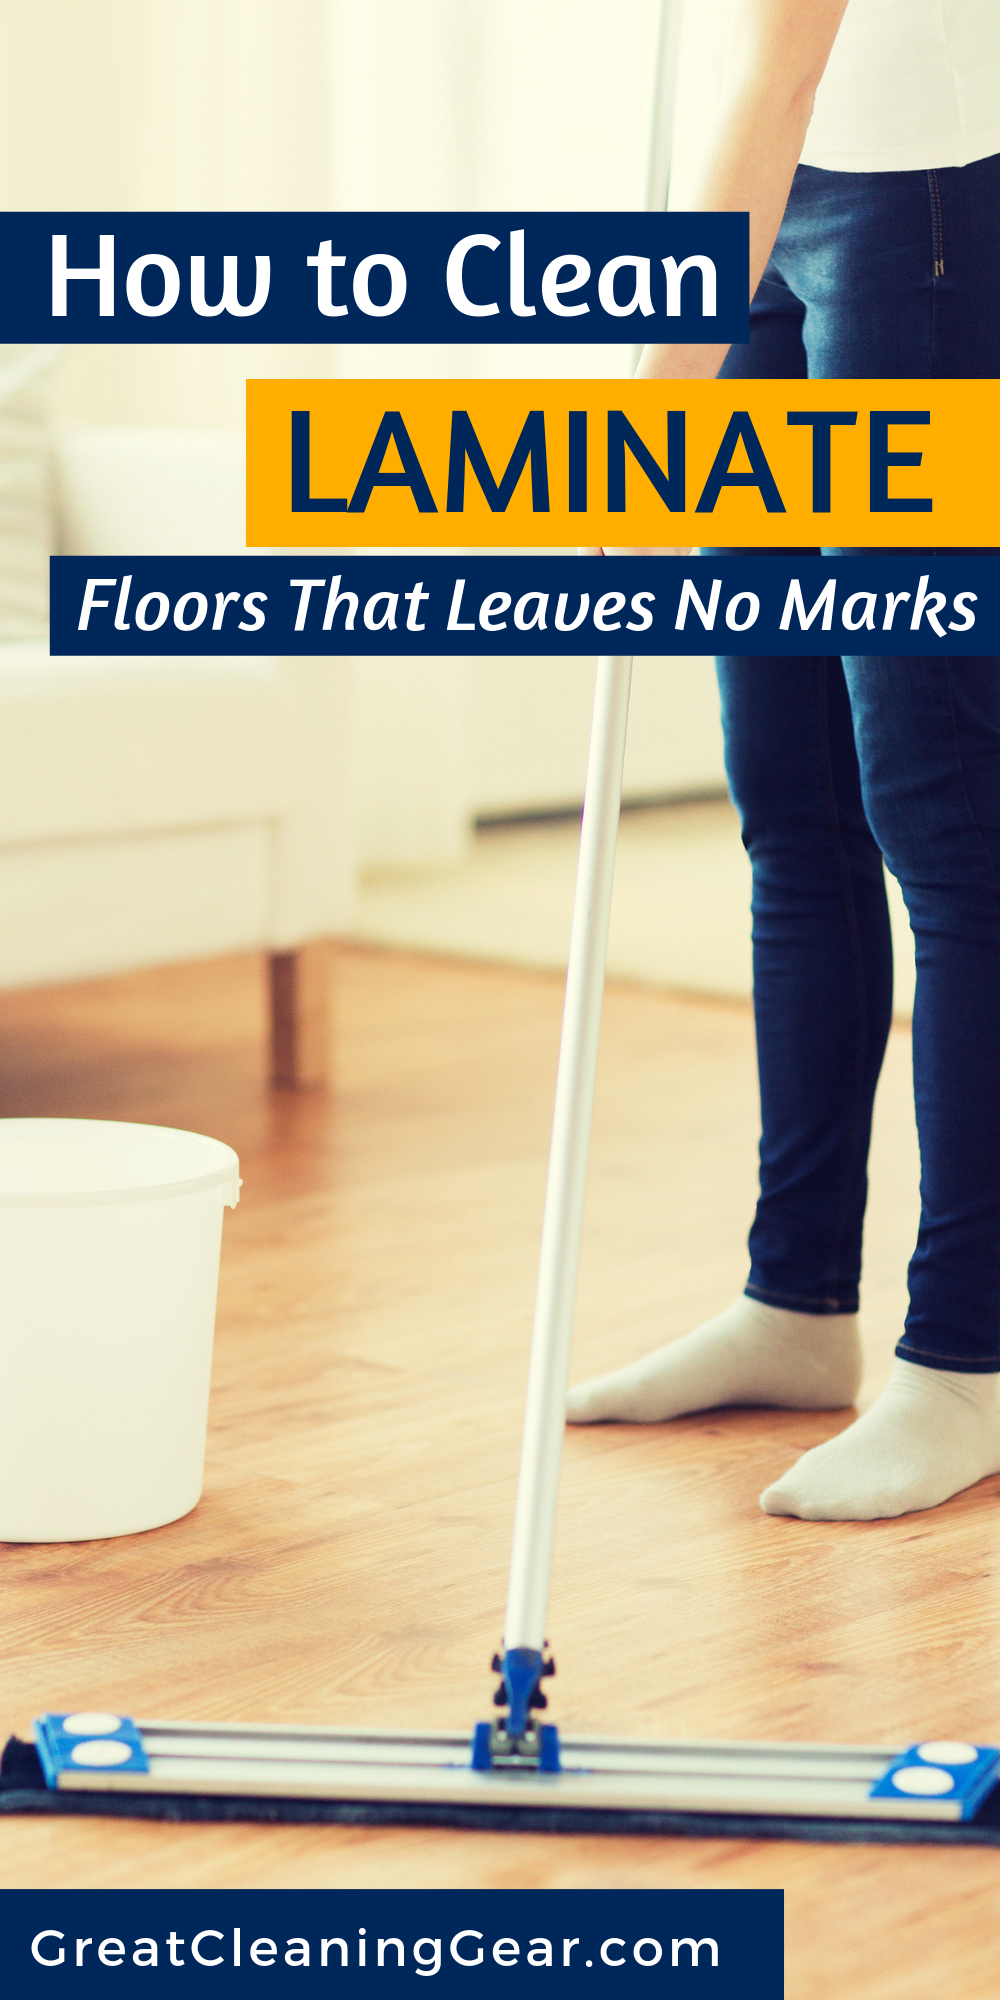 How To Clean Laminate Floor Without Streaking Clean Laminate How To Clean Laminate Flooring Mopping Laminate Floors